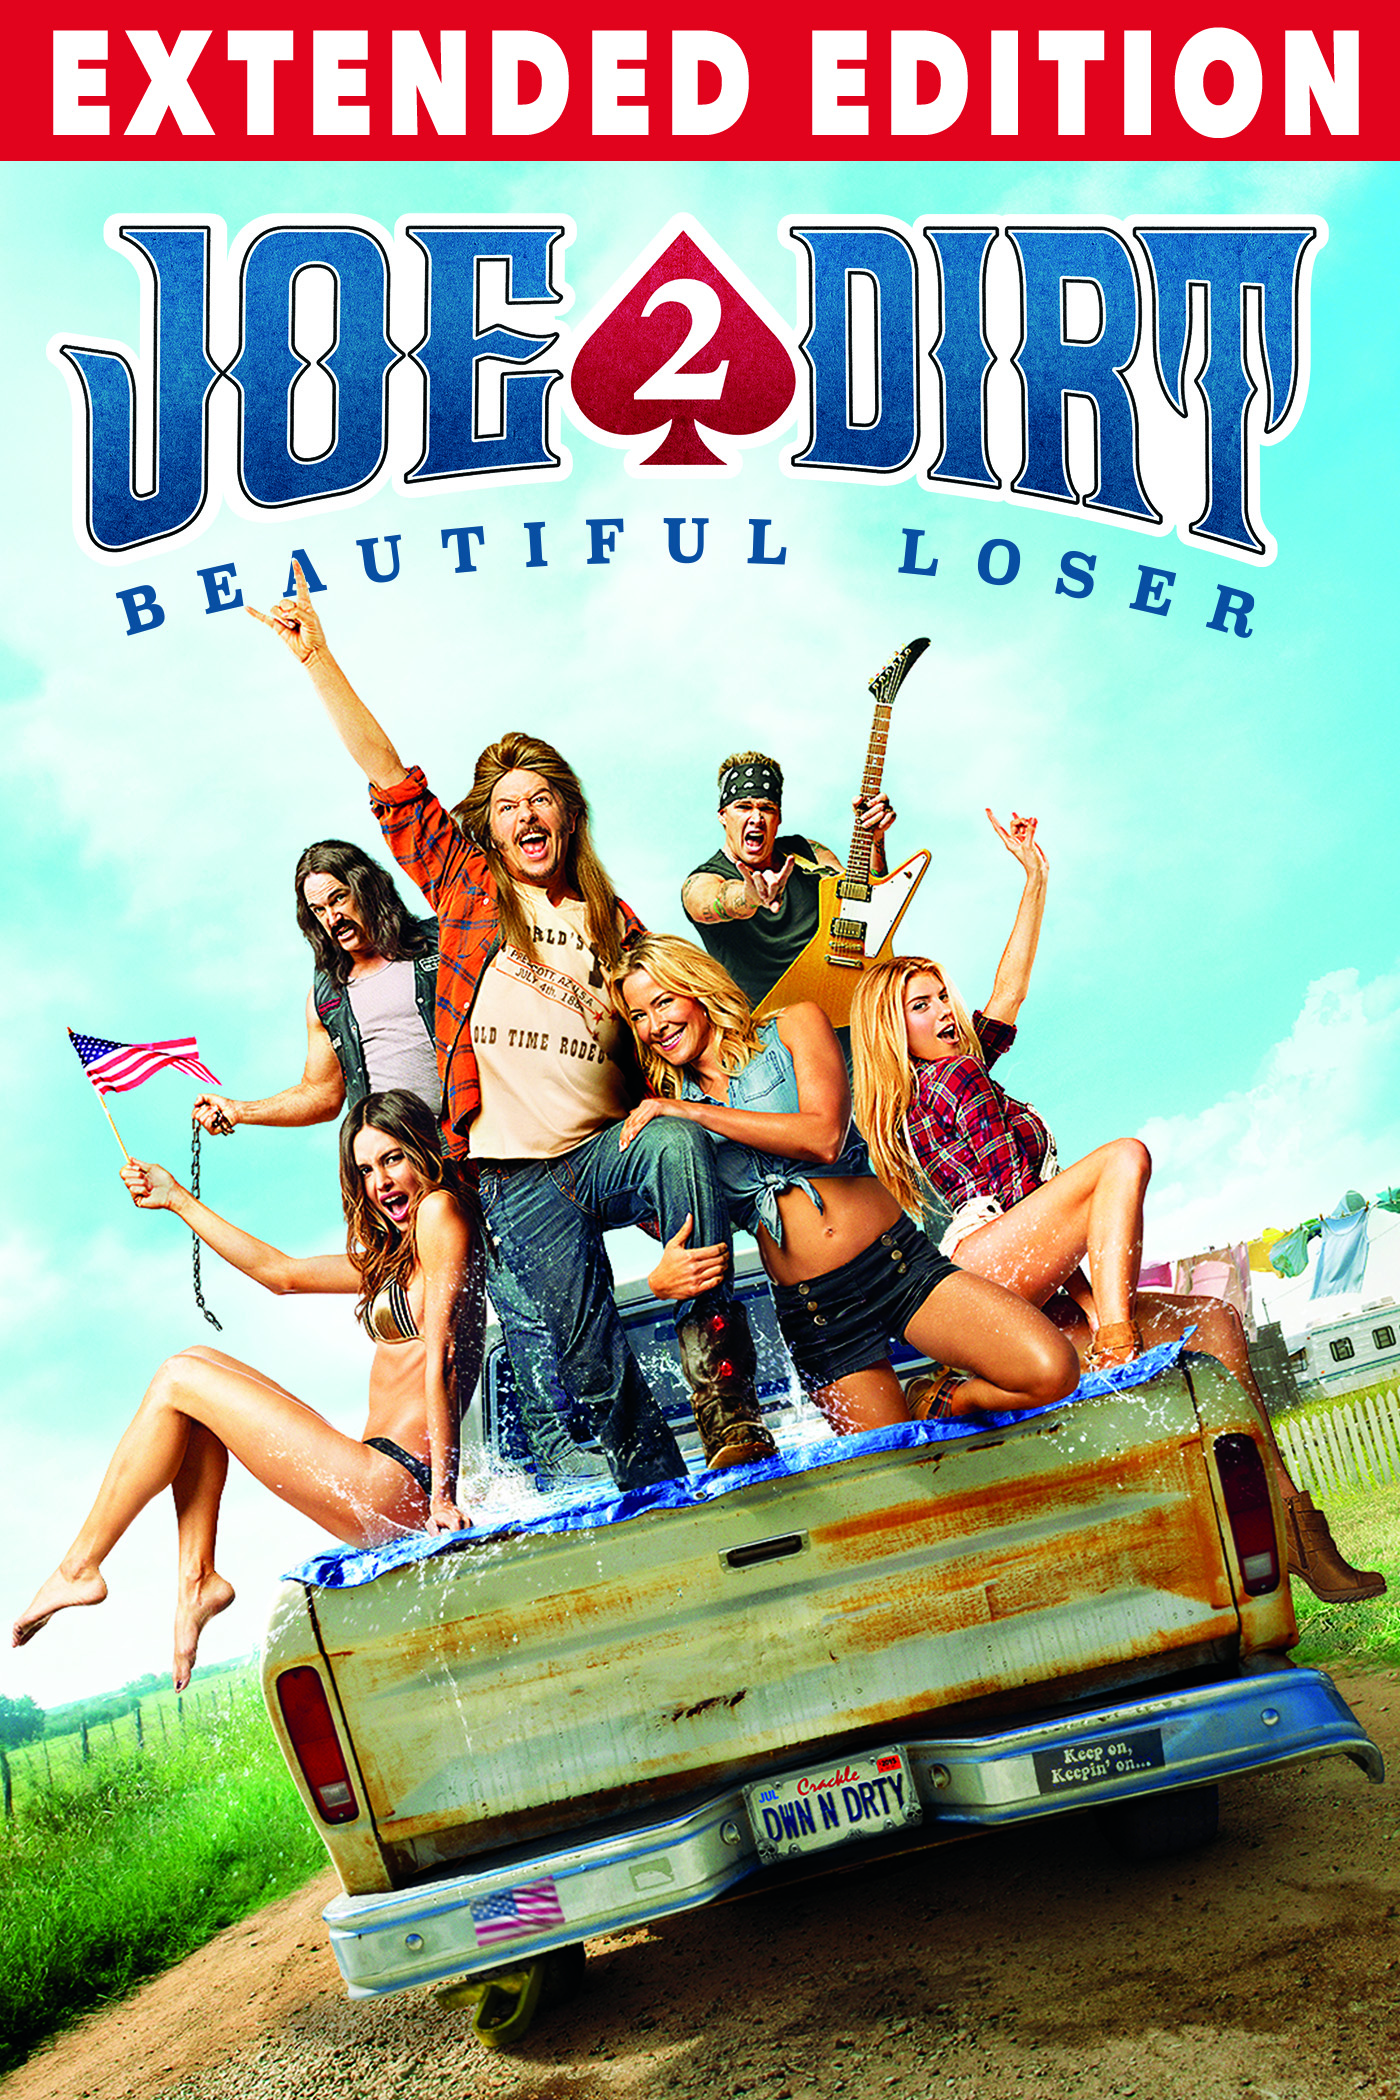 Joe Dirt 2: Beautiful Loser (Extended)